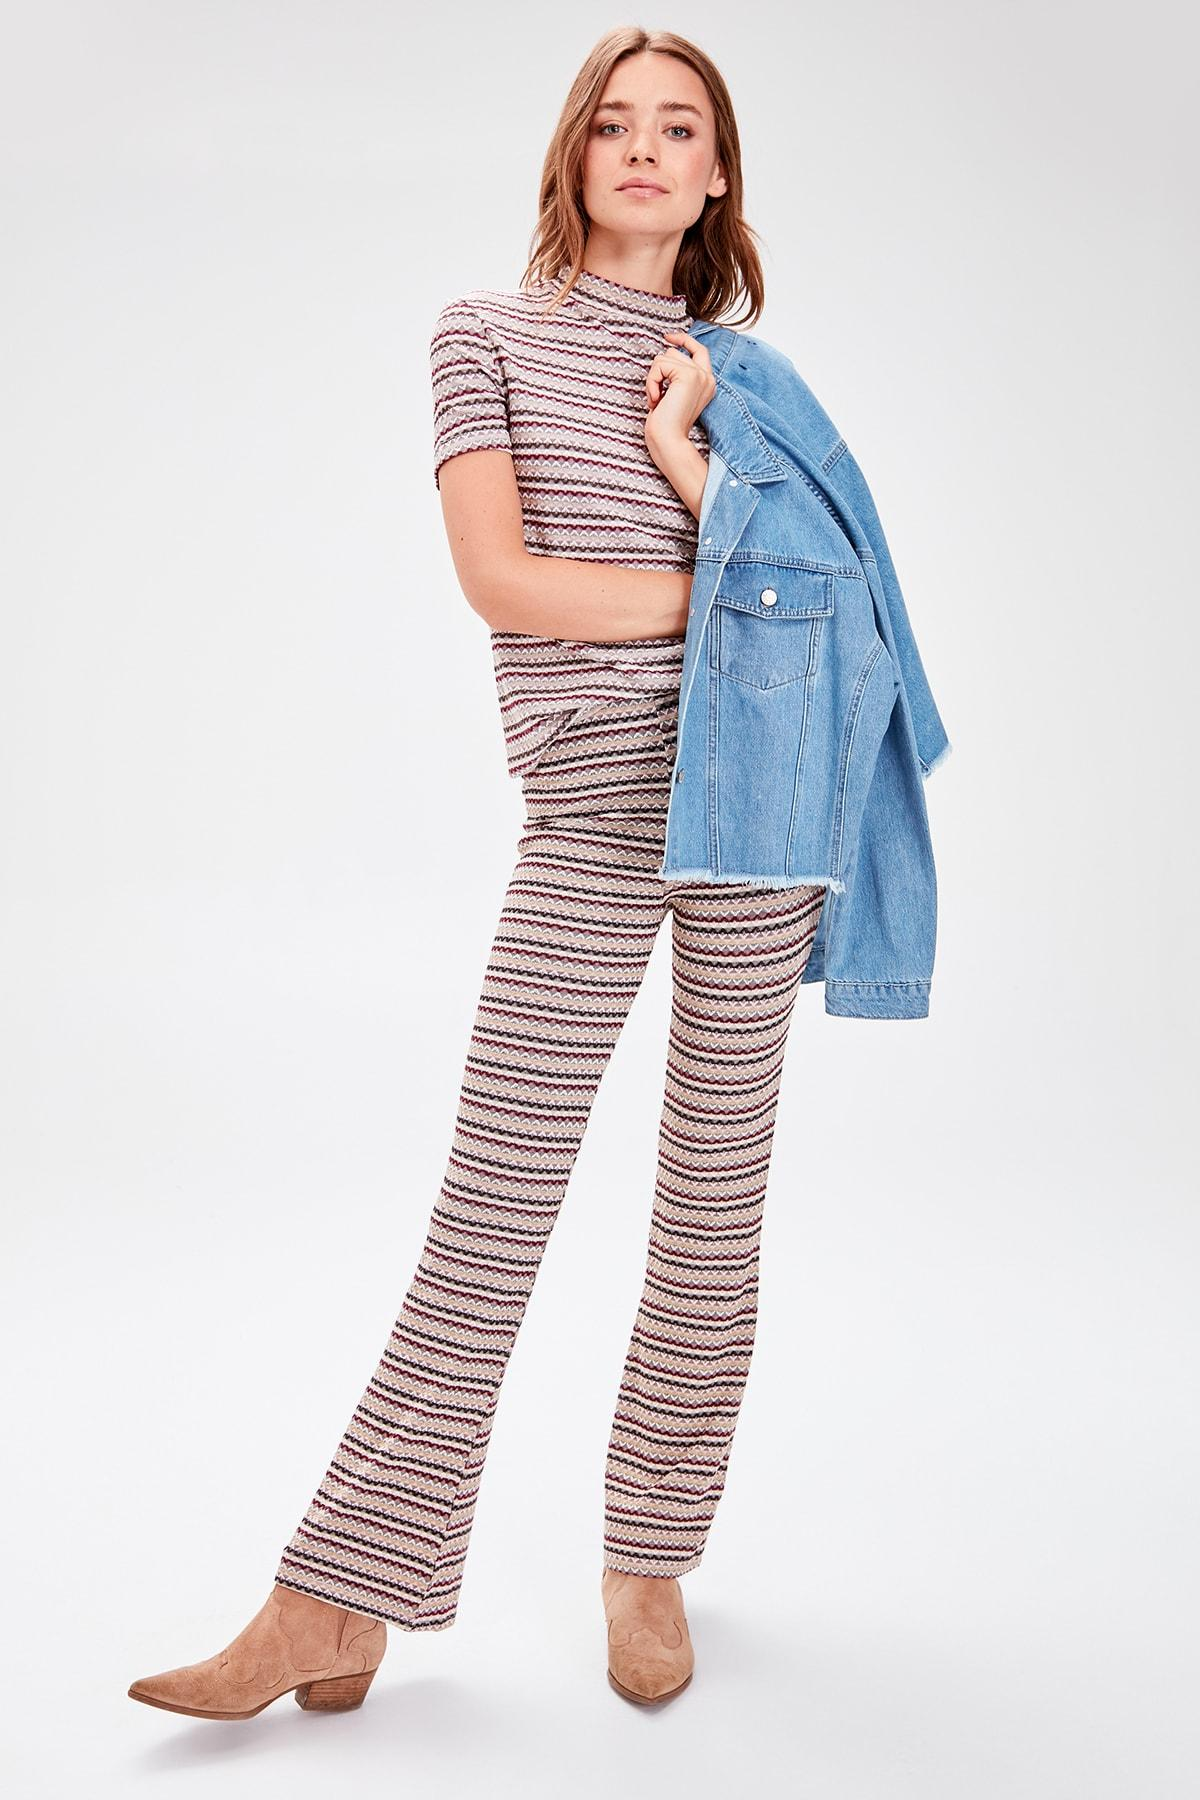 Trendyol Multicolour Striped Textured Knit Pants TWOAW20PL0287